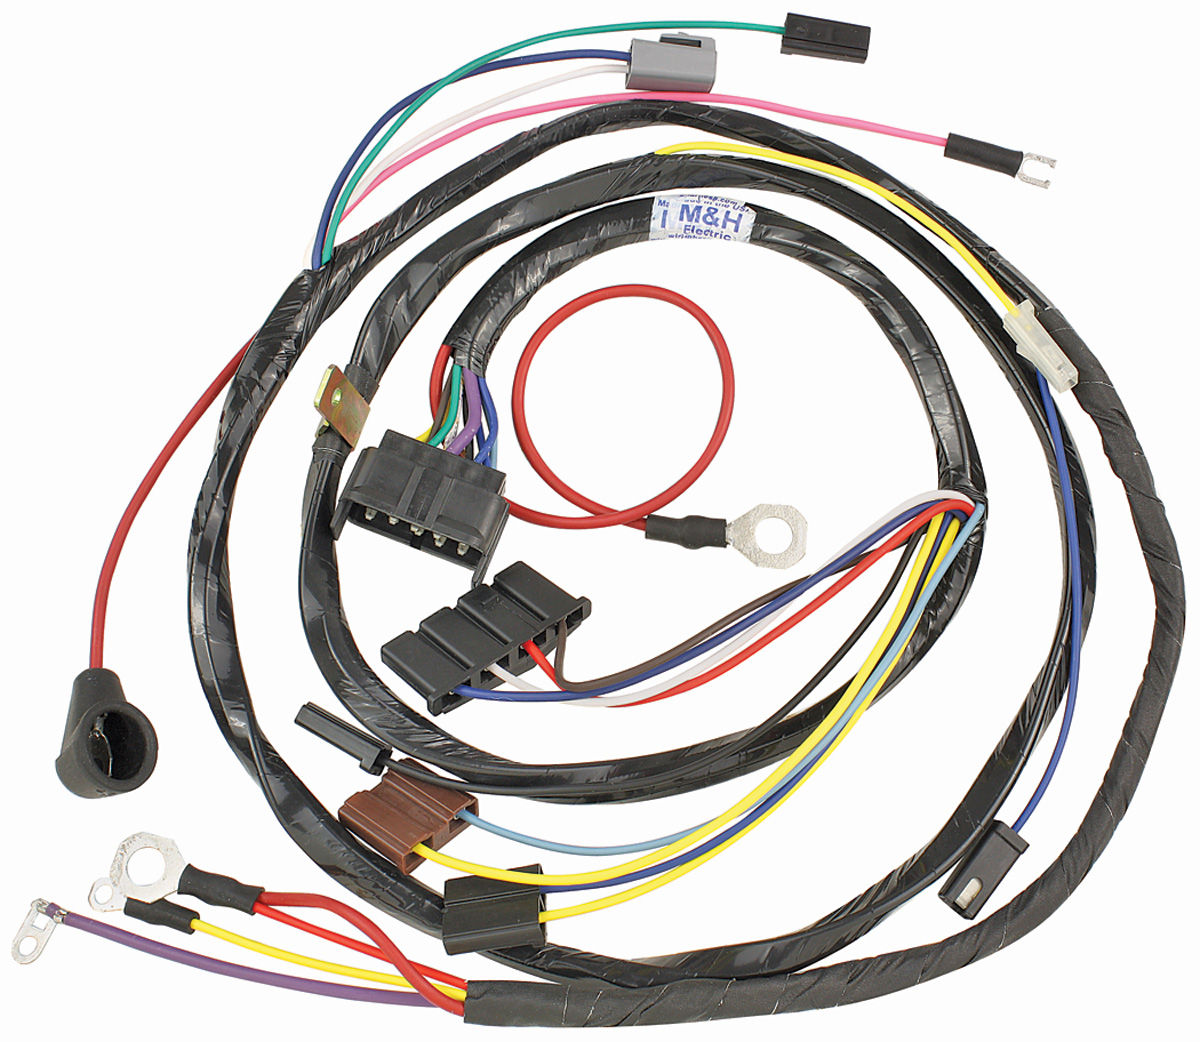 medium resolution of wiring harness for 1964 buick riviera wiring library rh 8 bloxhuette de 1962 buick riviera 1963 buick riviera